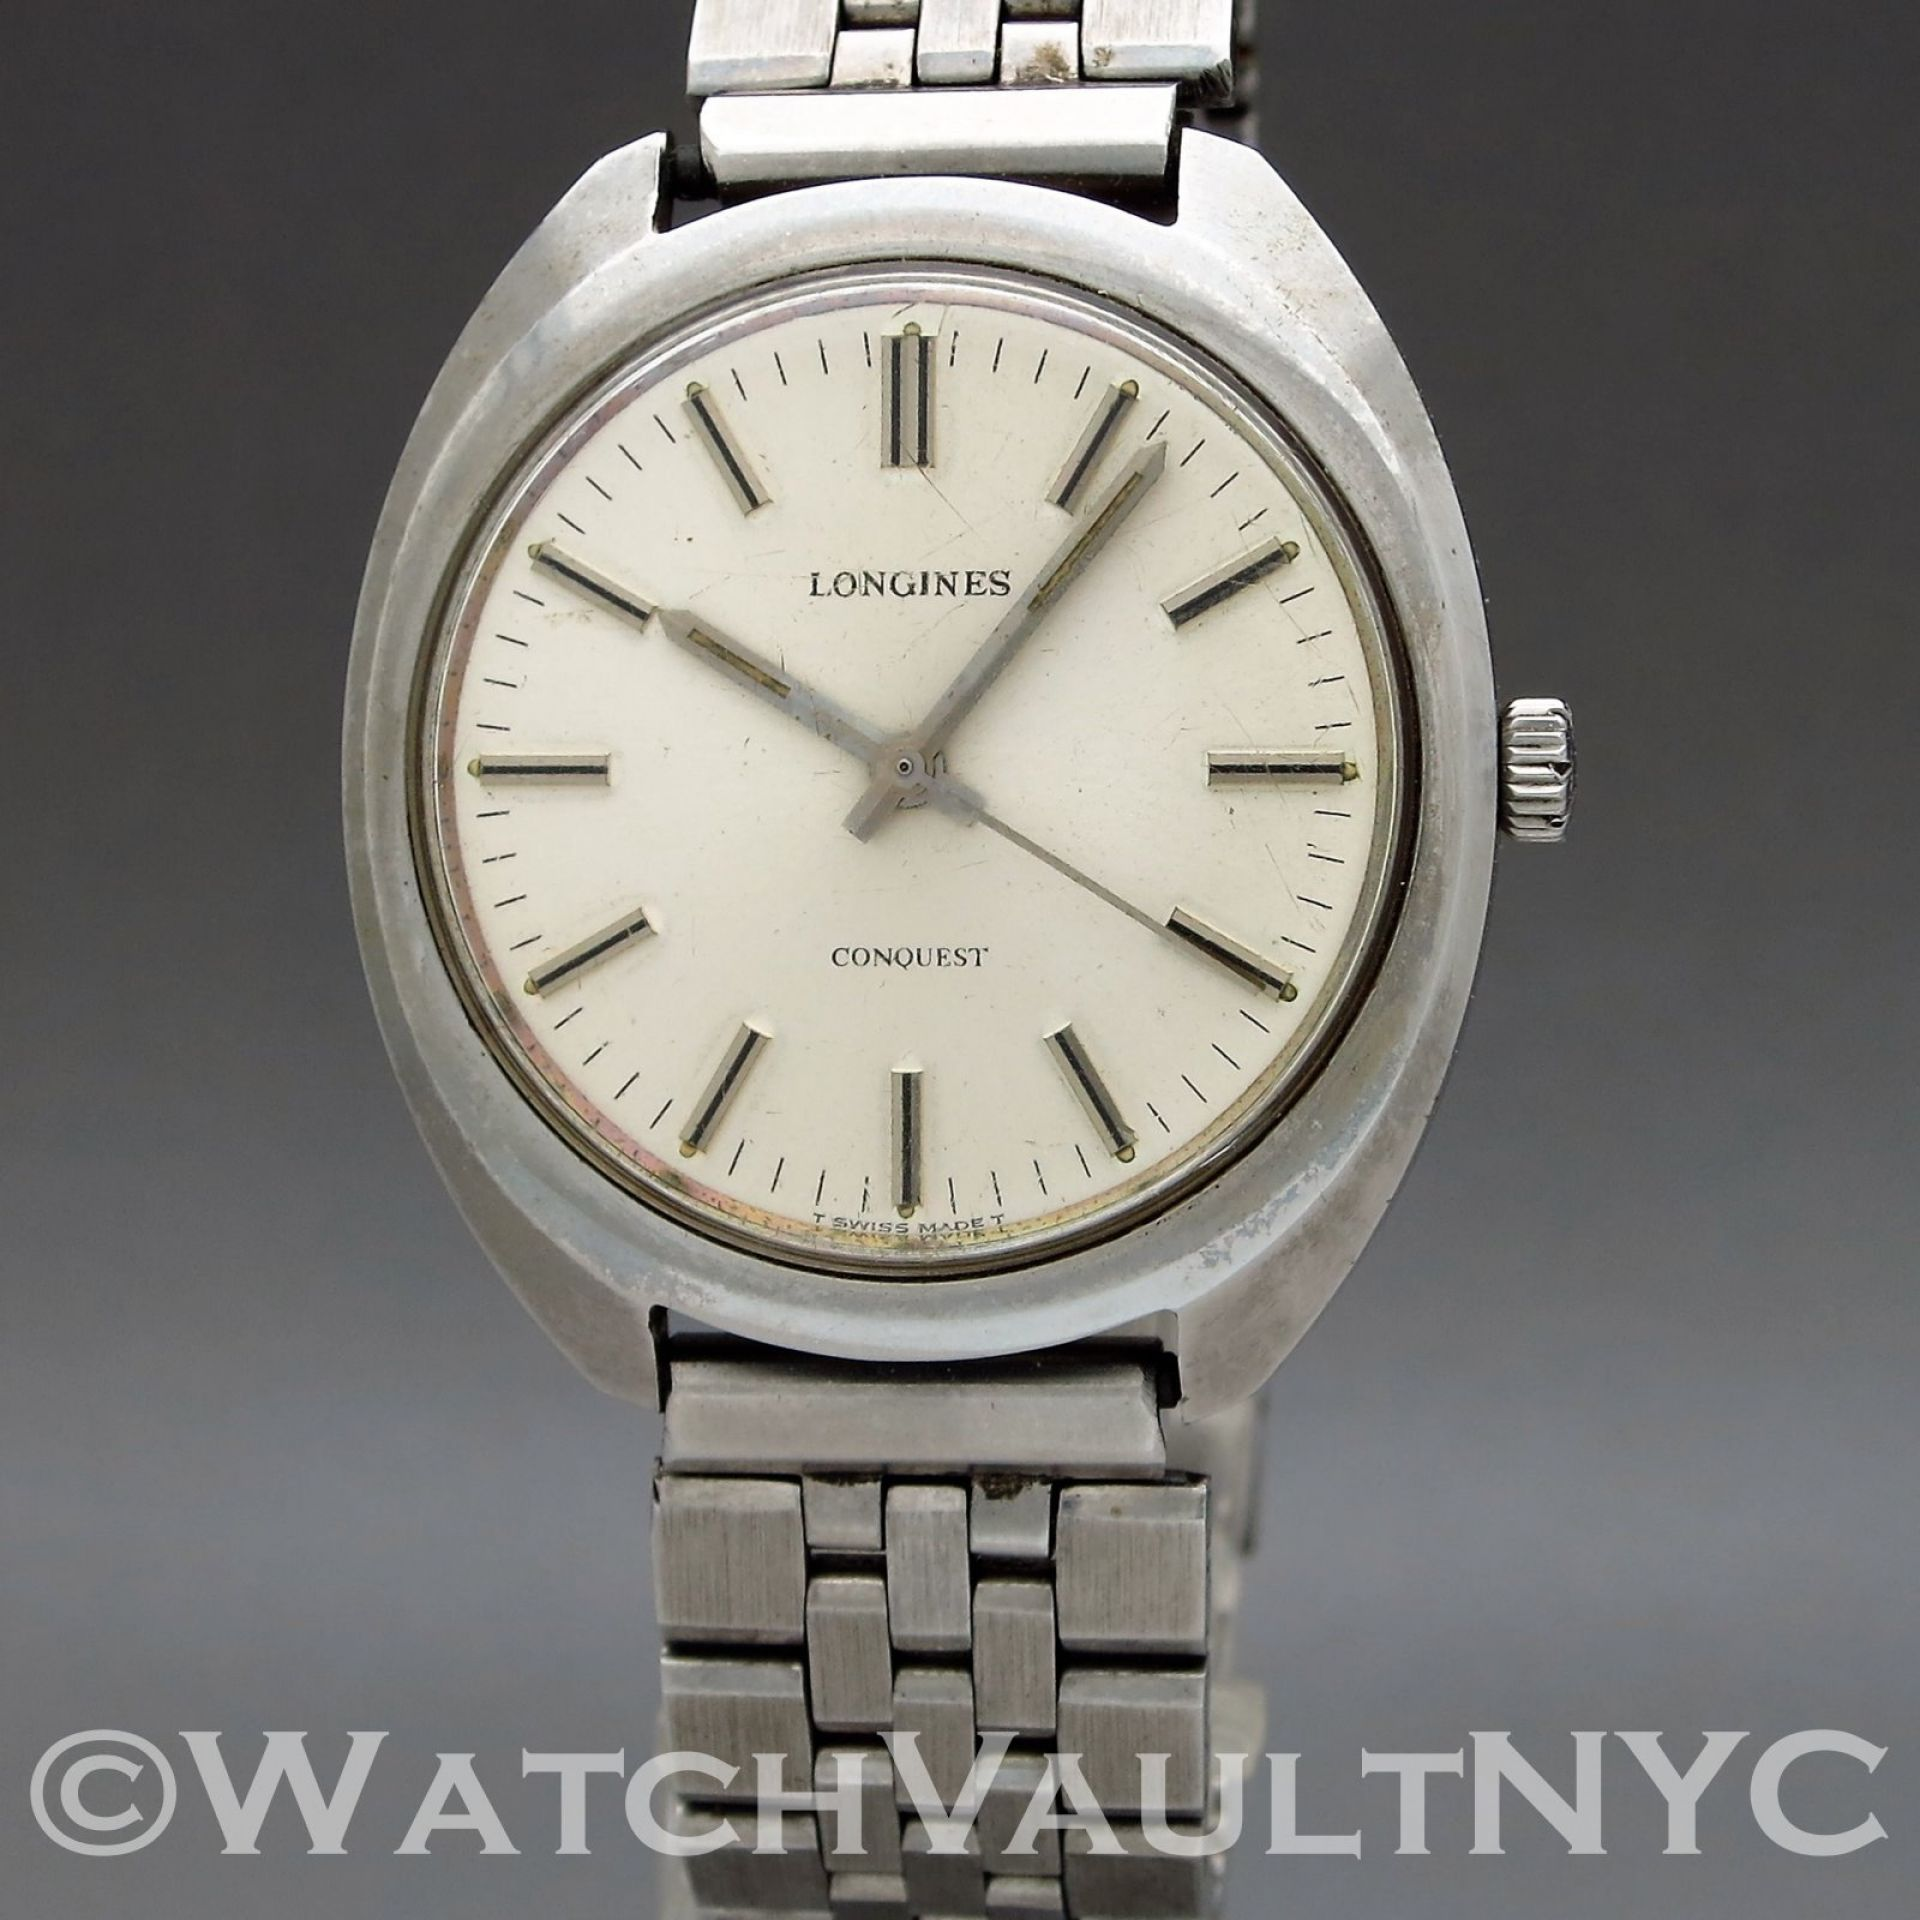 Longines Conquest 1500-4 1975 Vintage 36mm Manual RI302